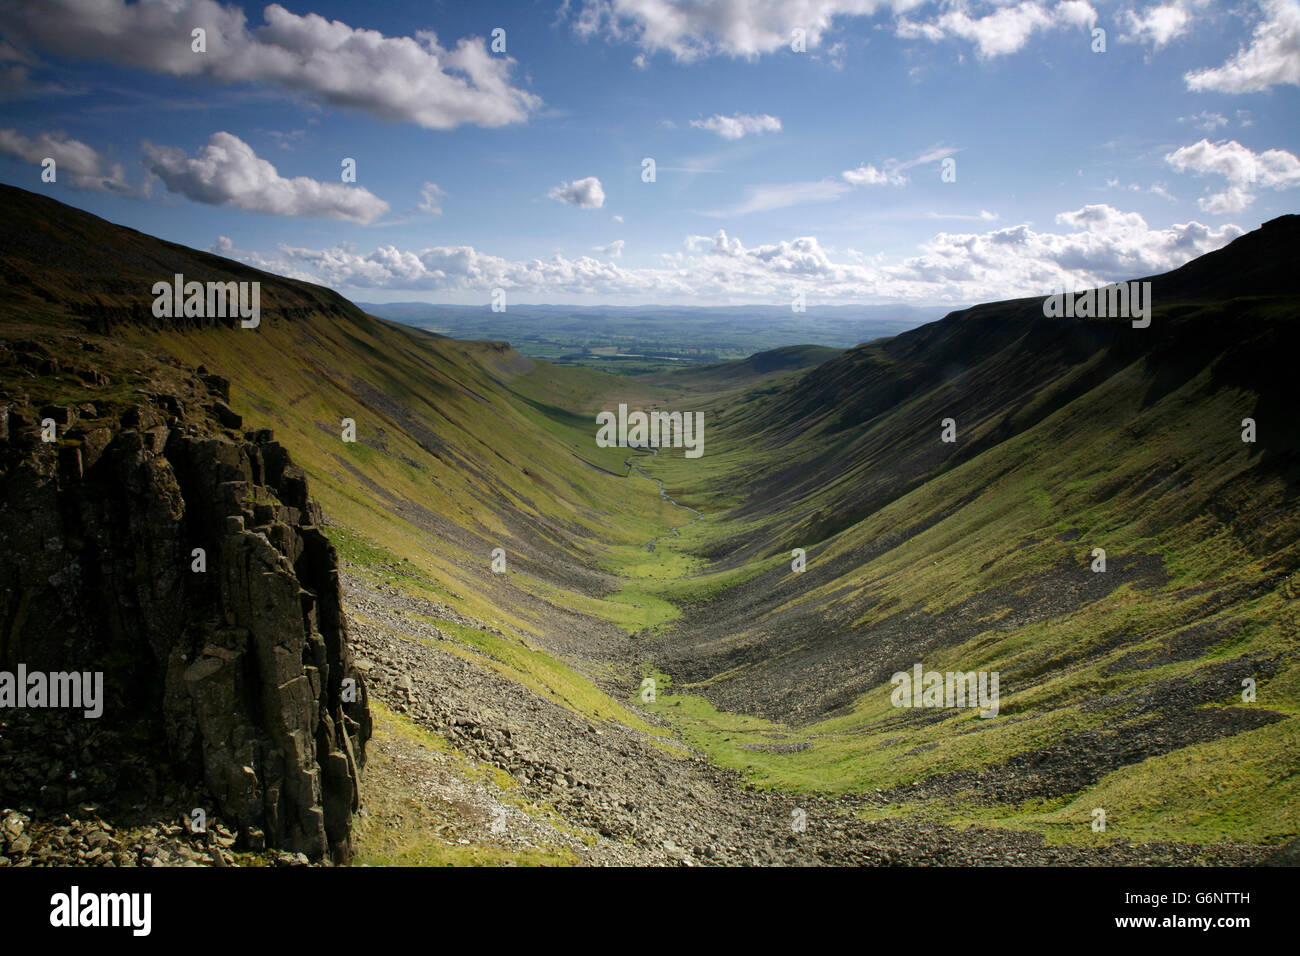 View of High Cup from the Pennine Way, Cumbria, England, UK - Stock Image